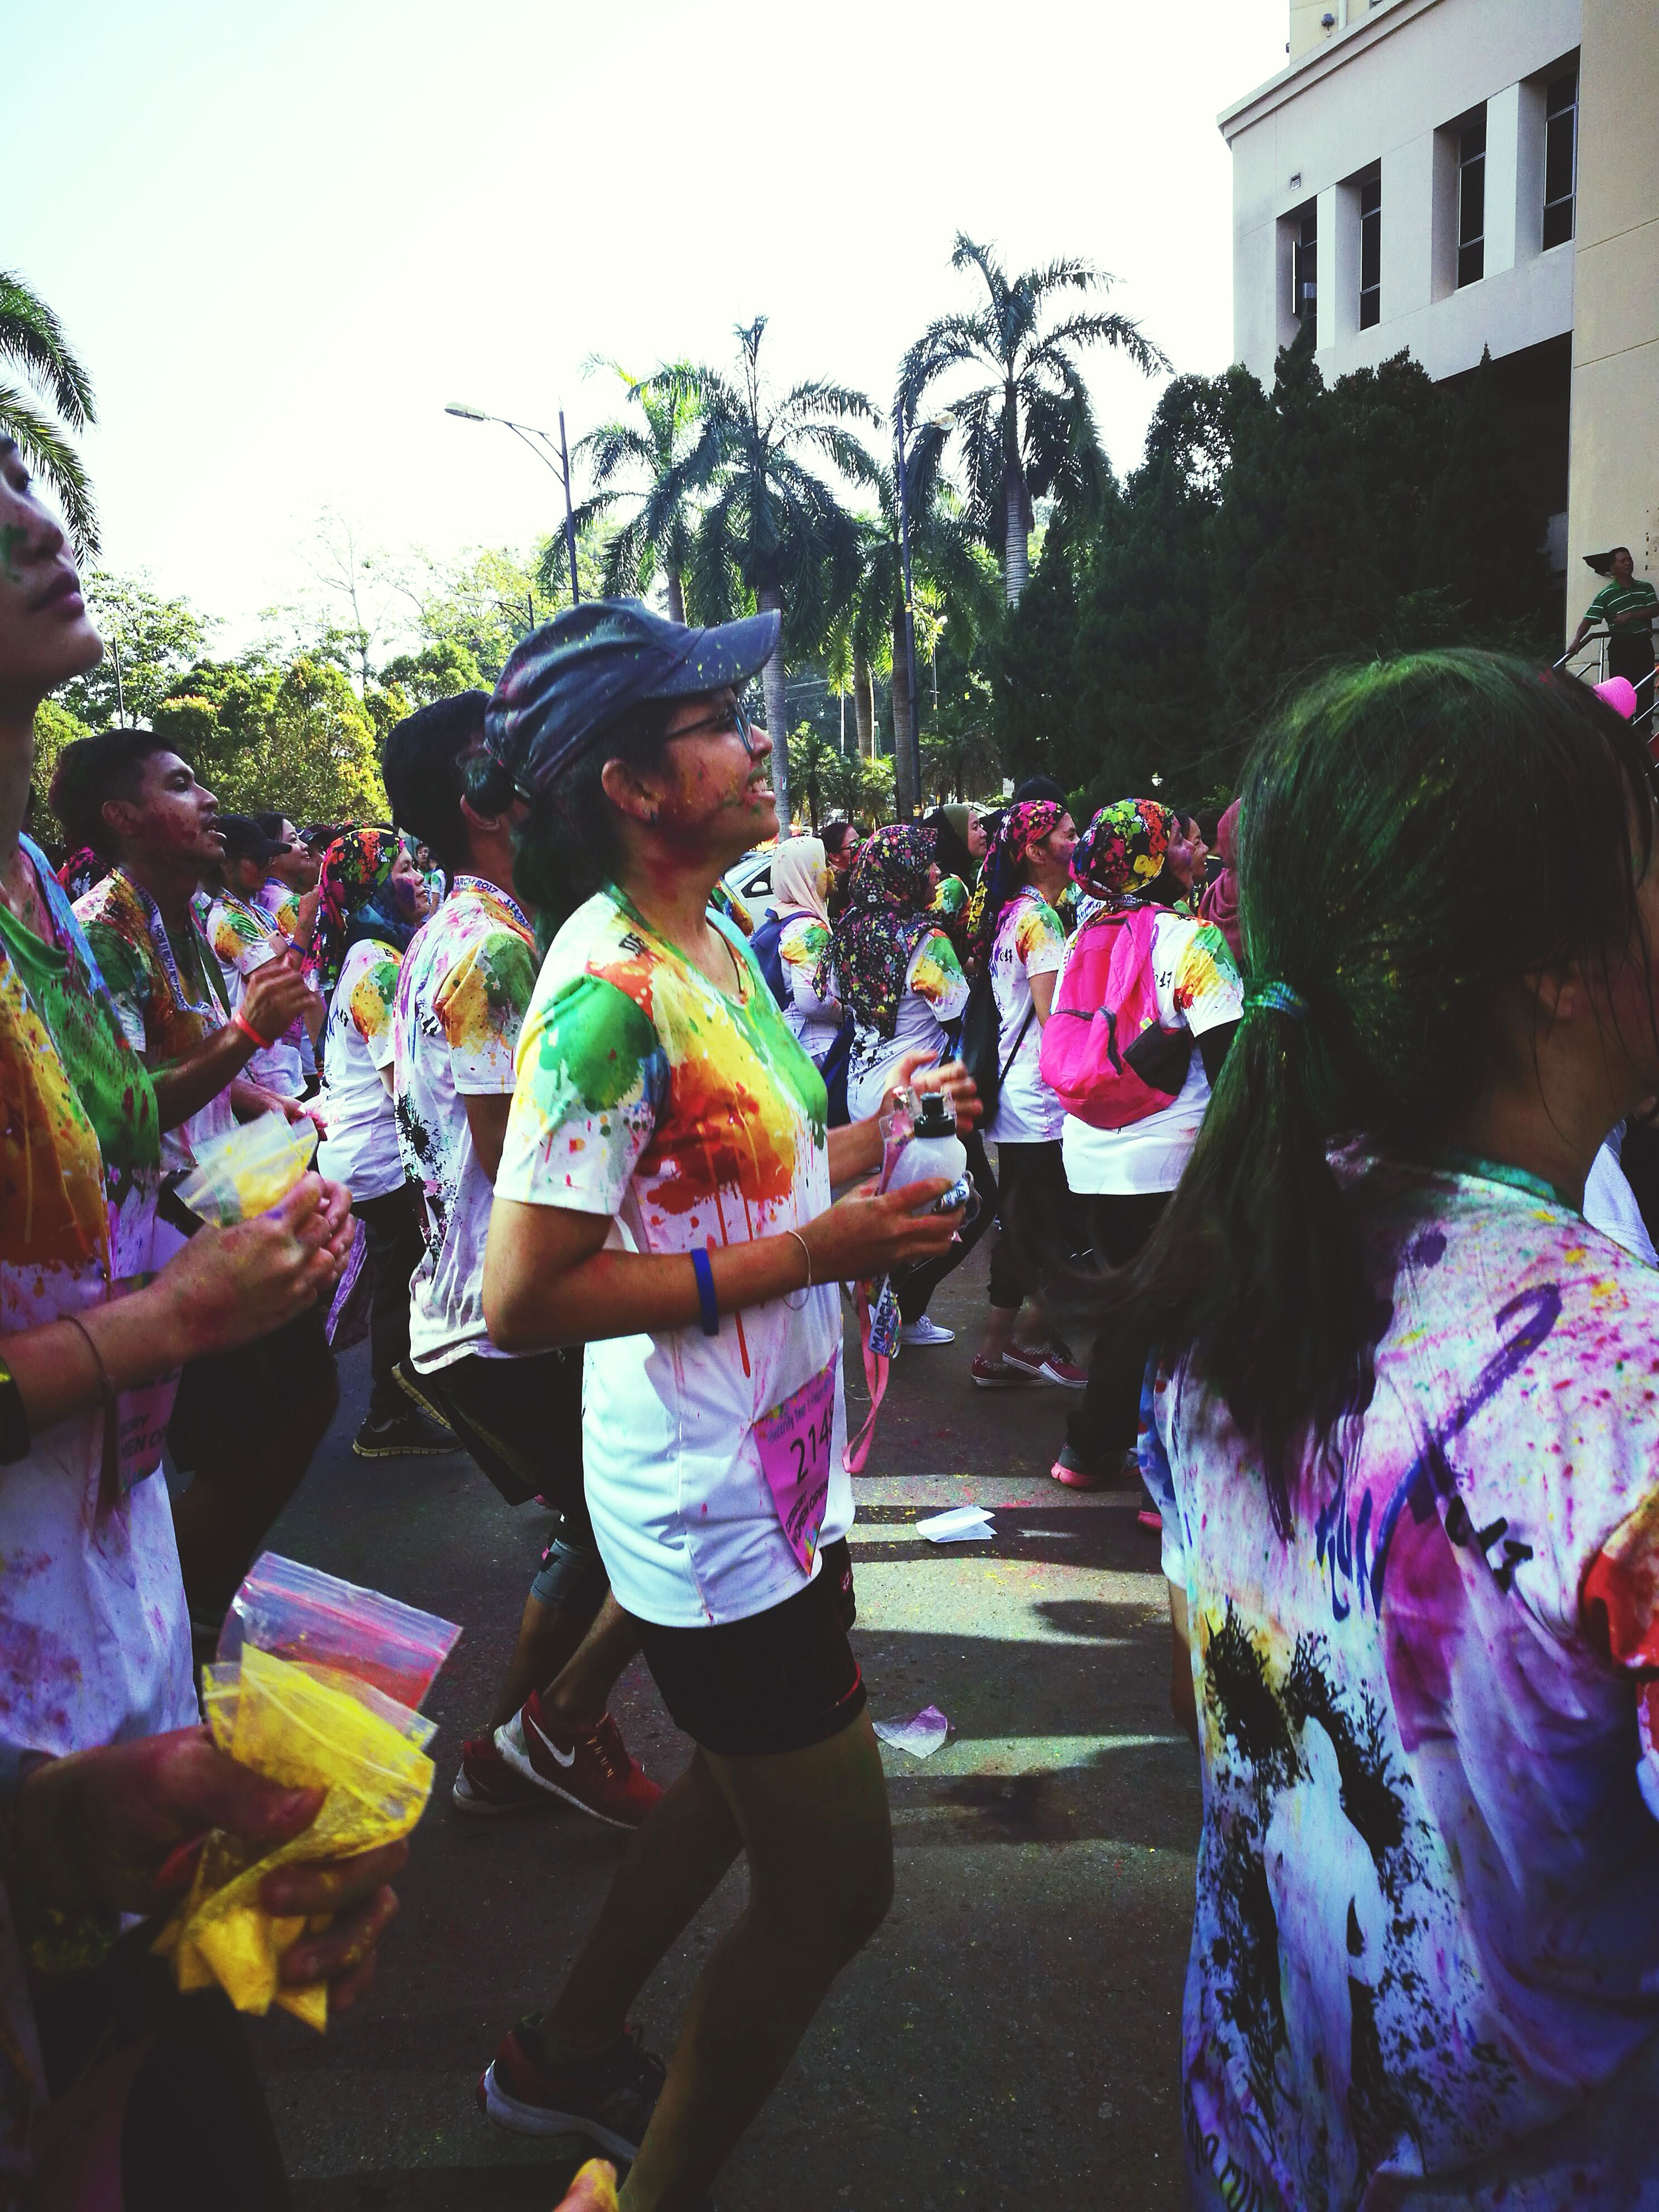 Spread The Colours In Your Heart Celebration Multi Colored Cultures Party - Social Event Adults Only Tradition Traditional Festival People Adult Holiday - Event Real People Outdoors Celebration Event Happiness Only Men Day Men Performance Young Adult Holi